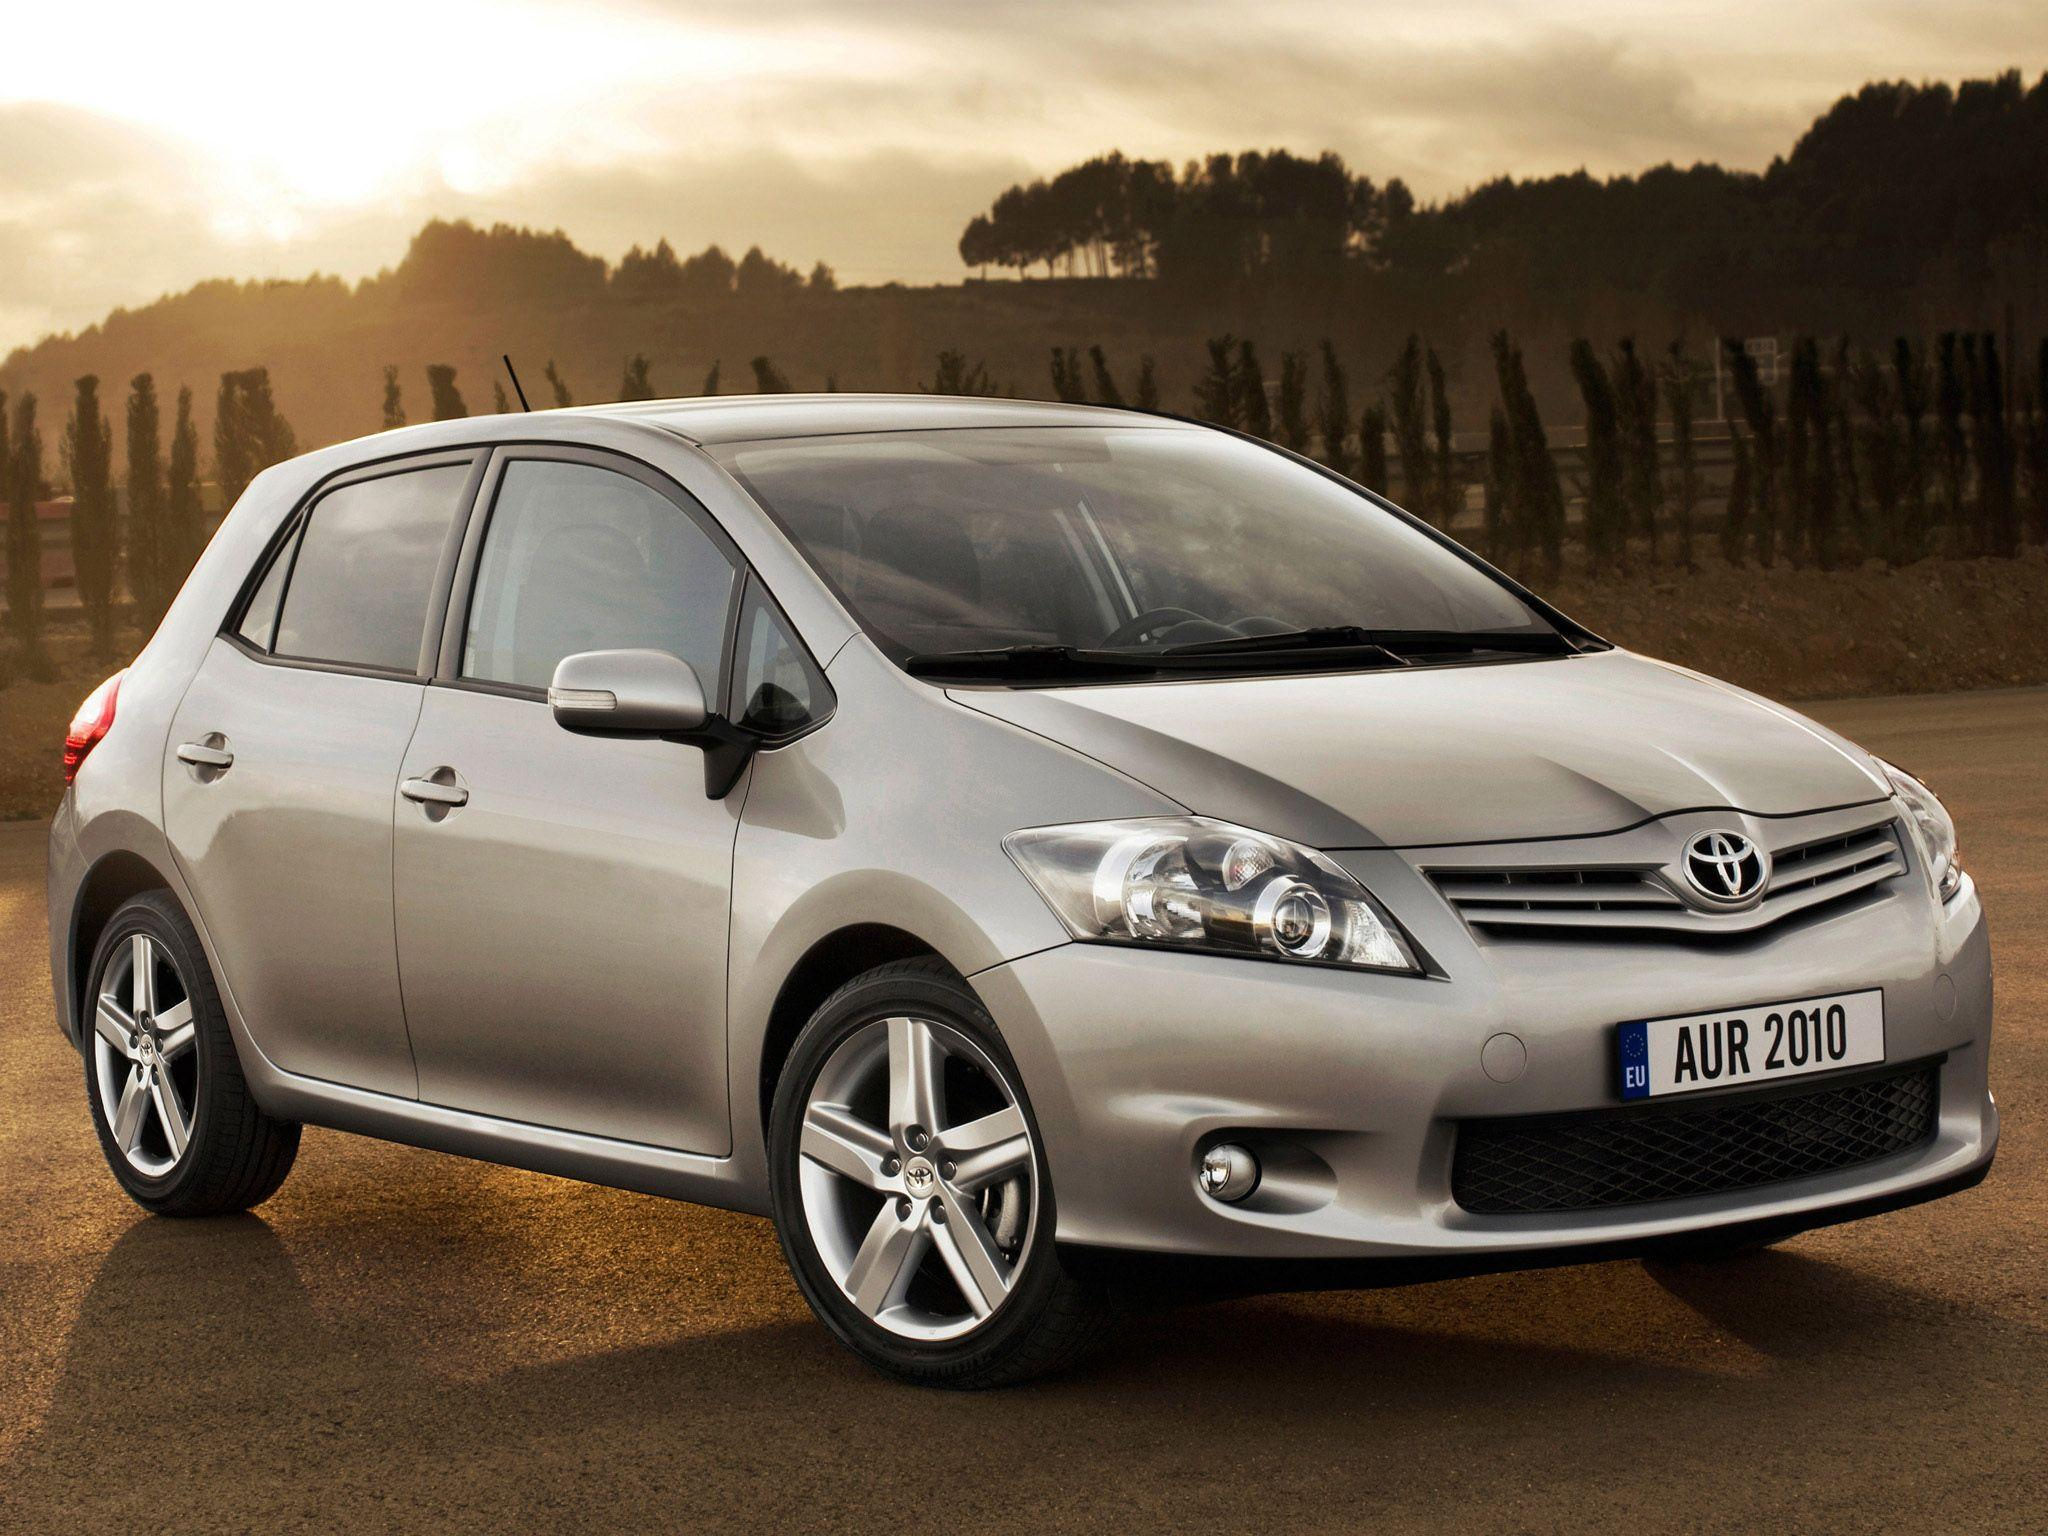 Toyota Auris - Free Car Wallpapers HD